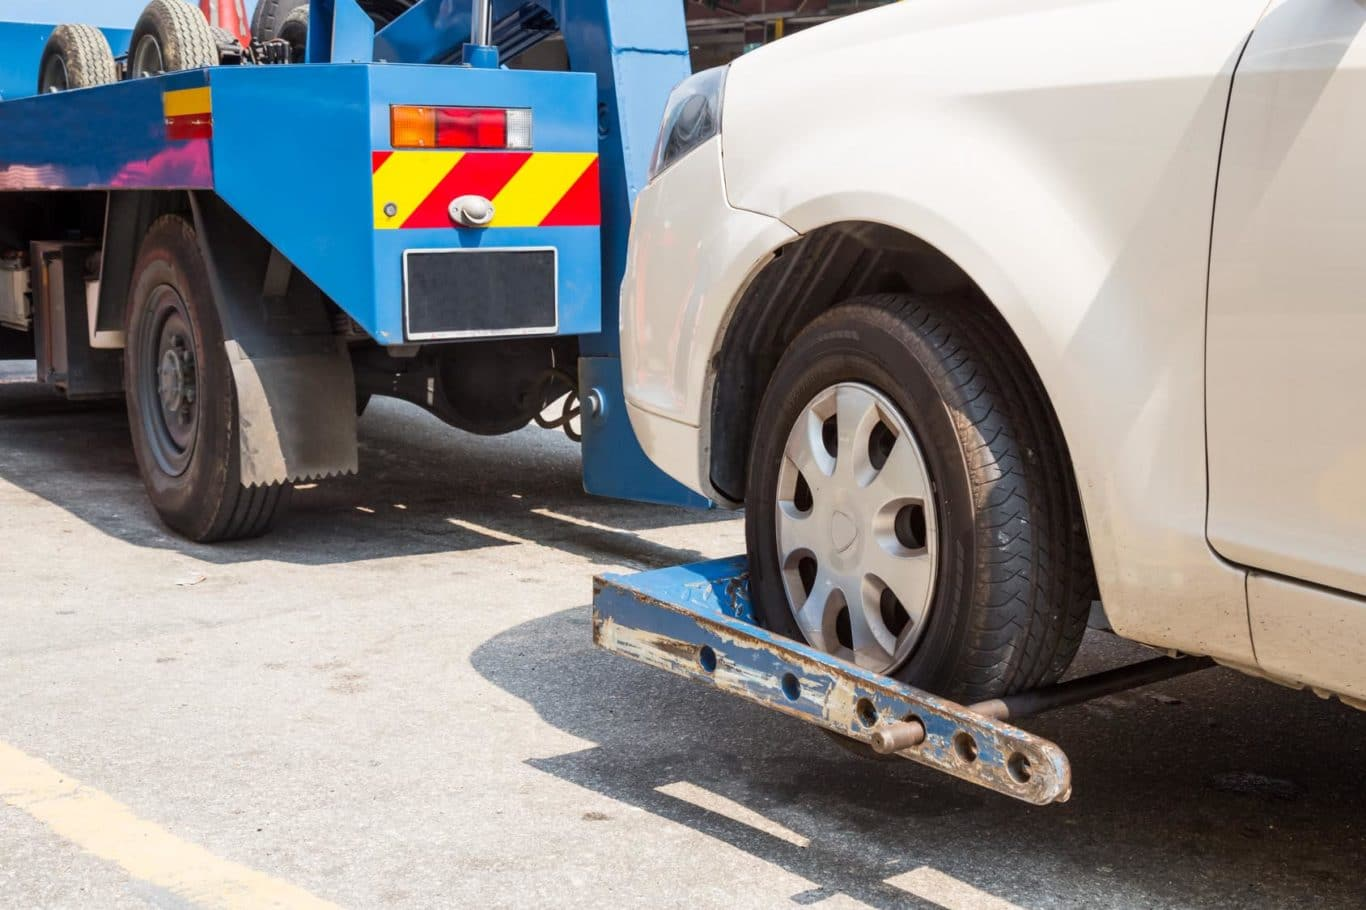 Ashford, County Wicklow expert Roadside Assistance services